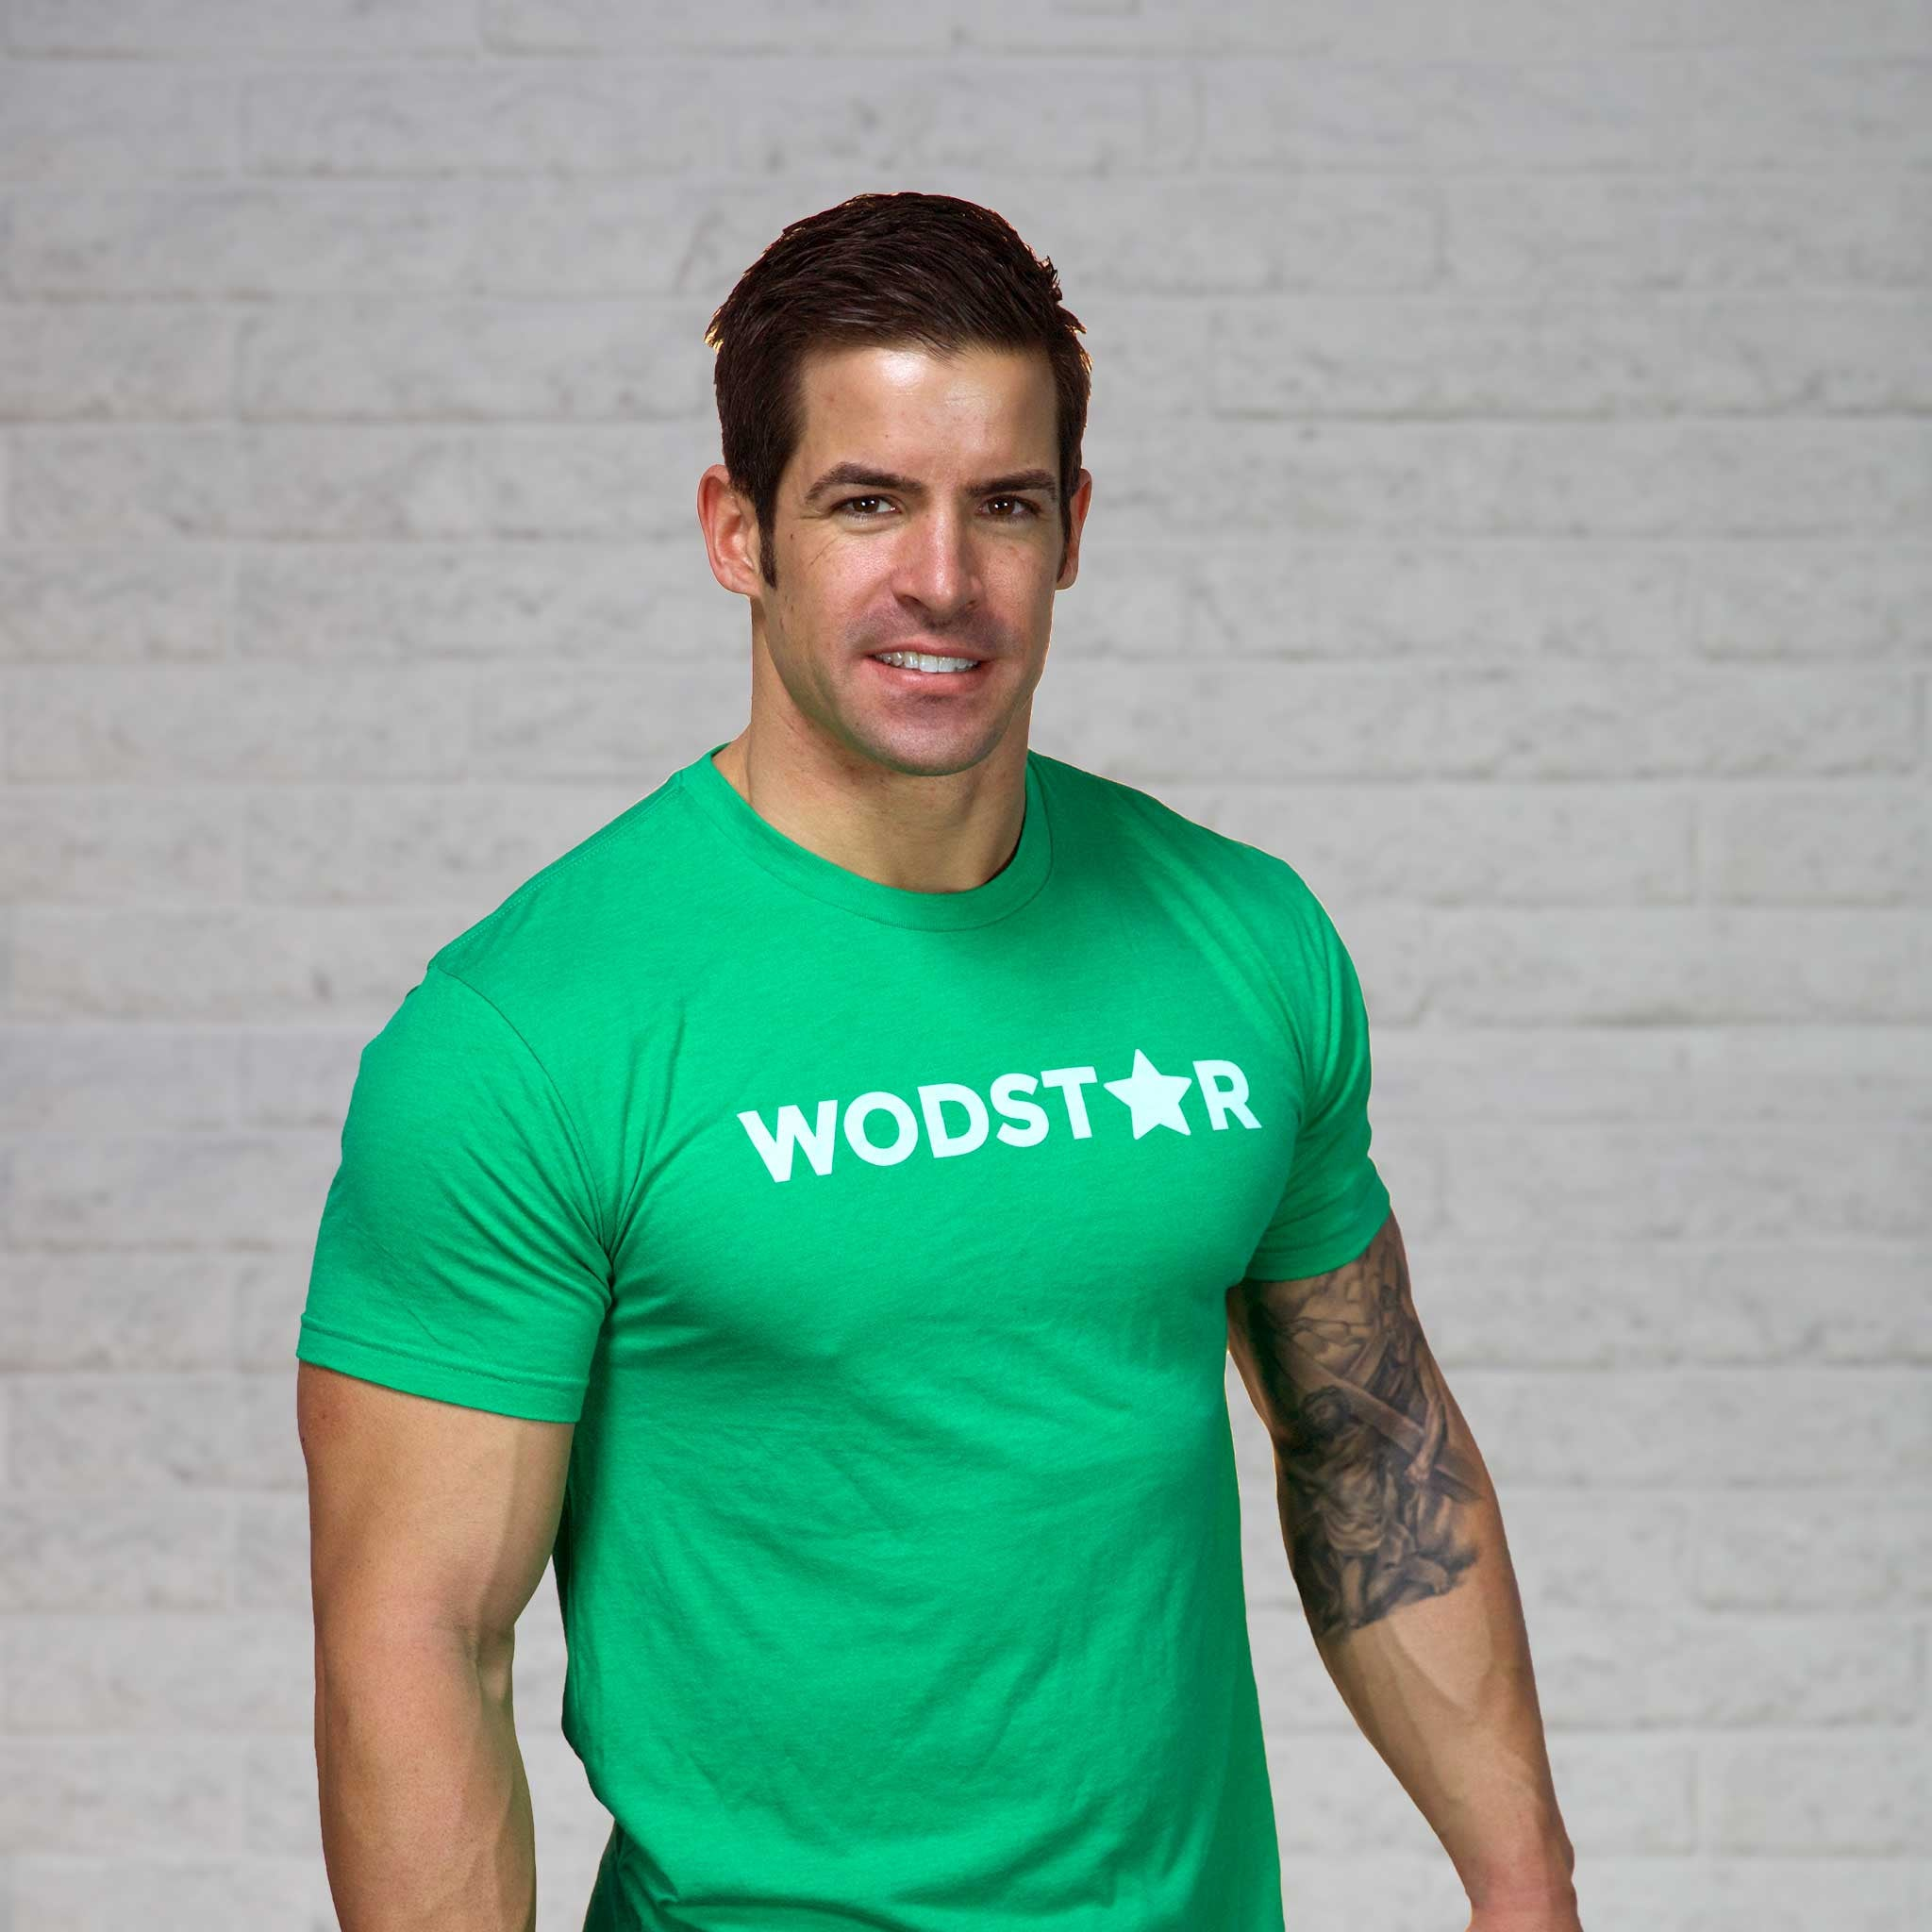 Men's Wodstar Workout T-Shirt: Money